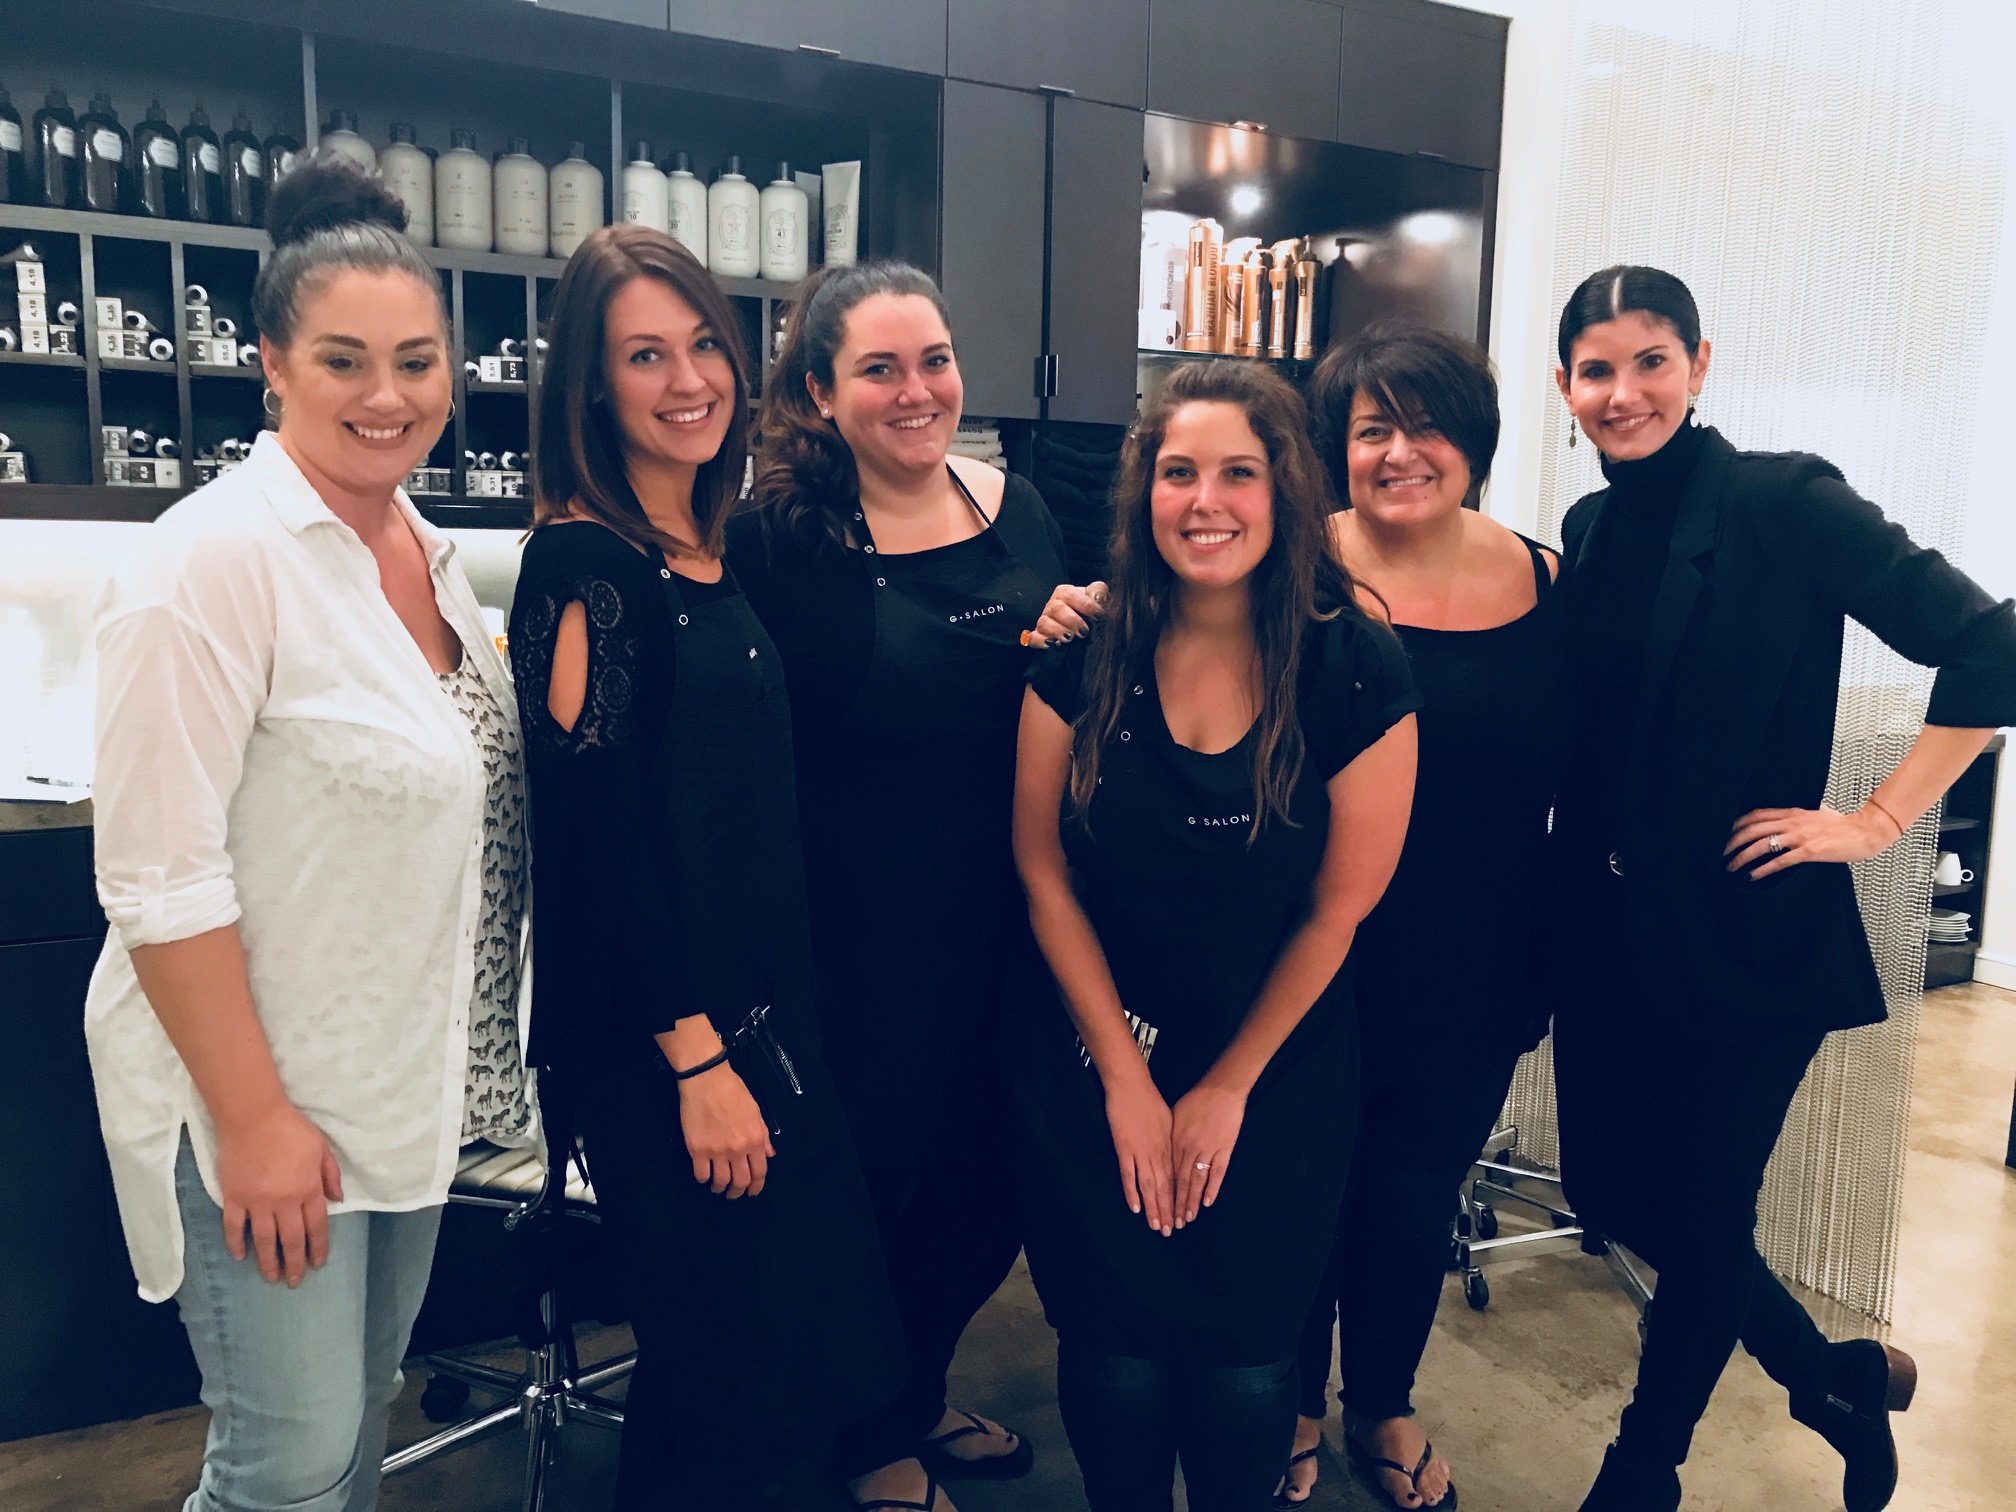 The Team and I at G salon! Such a great Day!